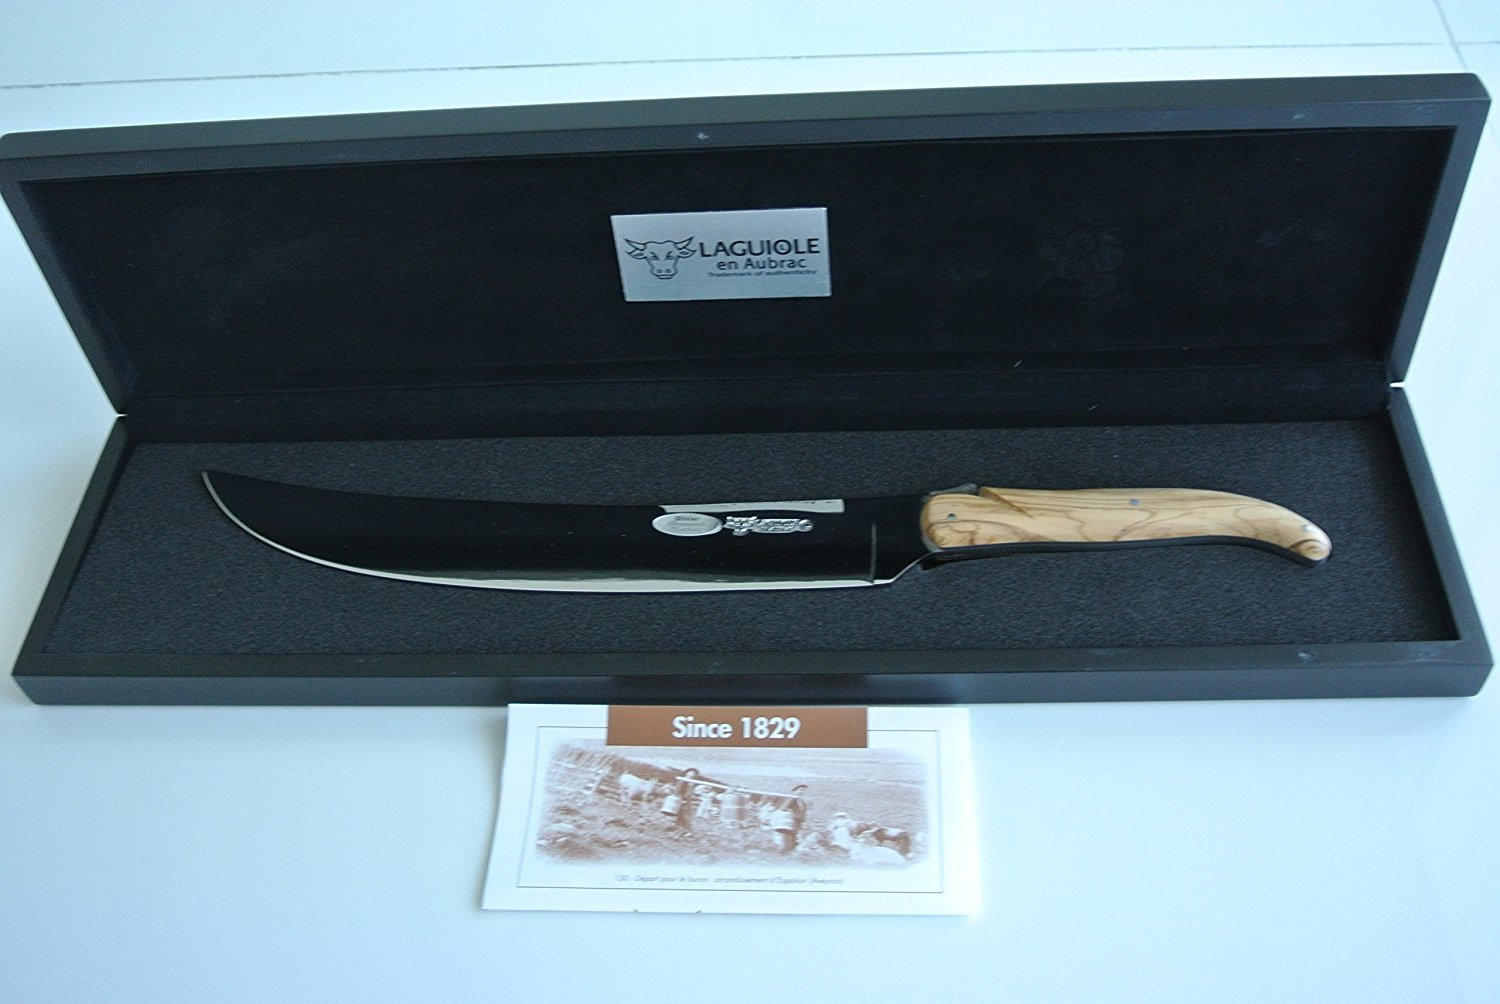 Laguiole en Aubrac Champagne Saber Stainless Steel Olivewood